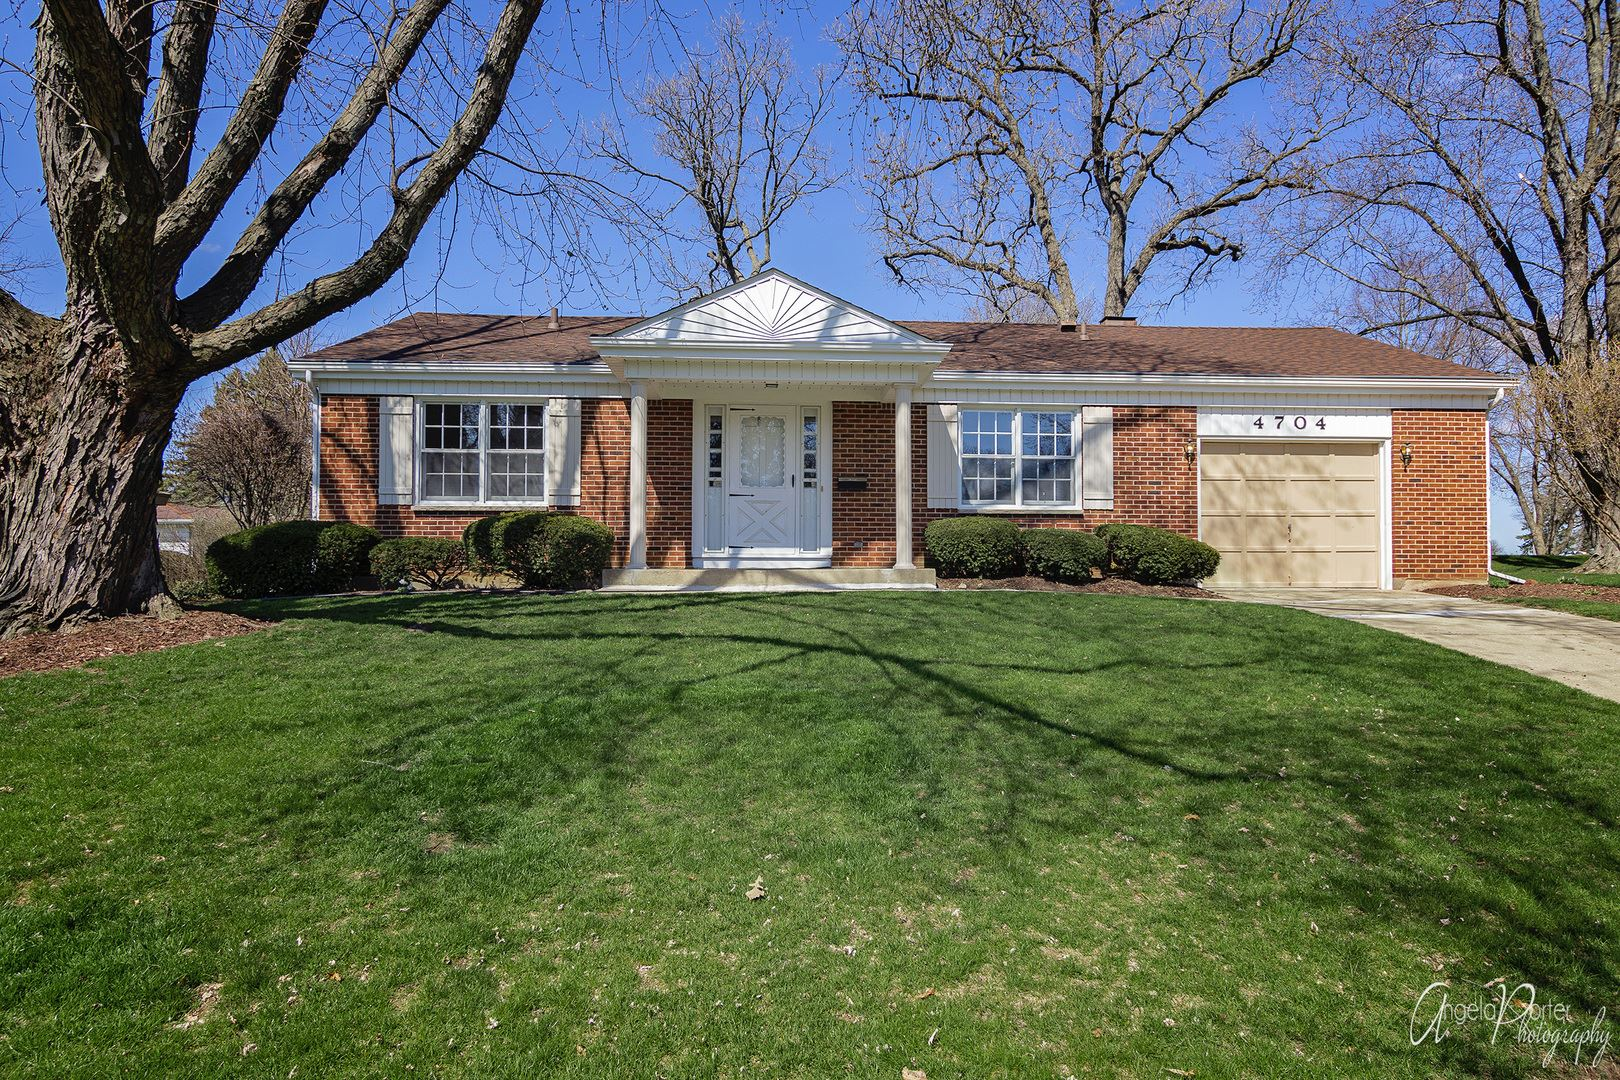 4704 Chesterfield Drive, McHenry, IL 60050 - #: 10694552